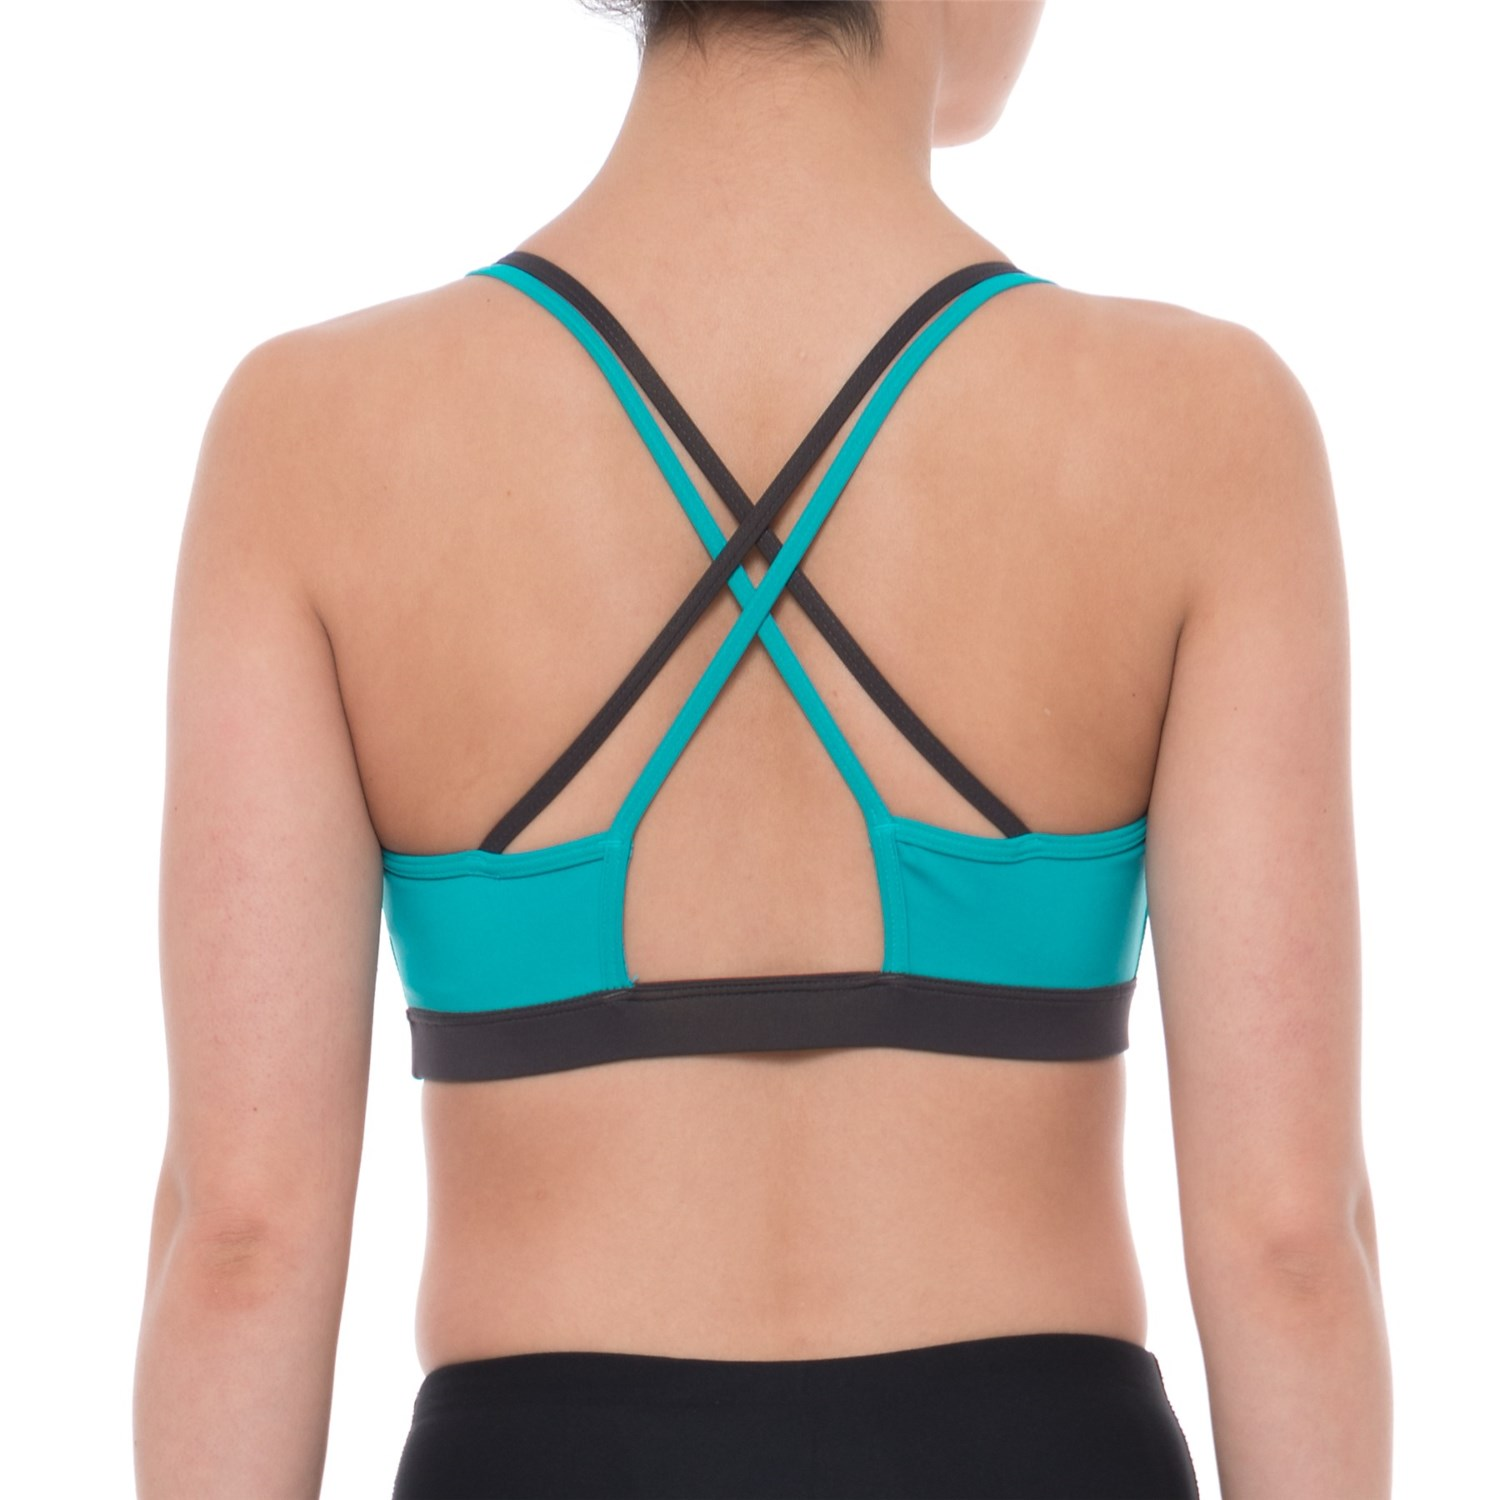 fc67088ade253 ... 362HR 2 adidas Crossback Sports Bra - Low Impact (For Women)